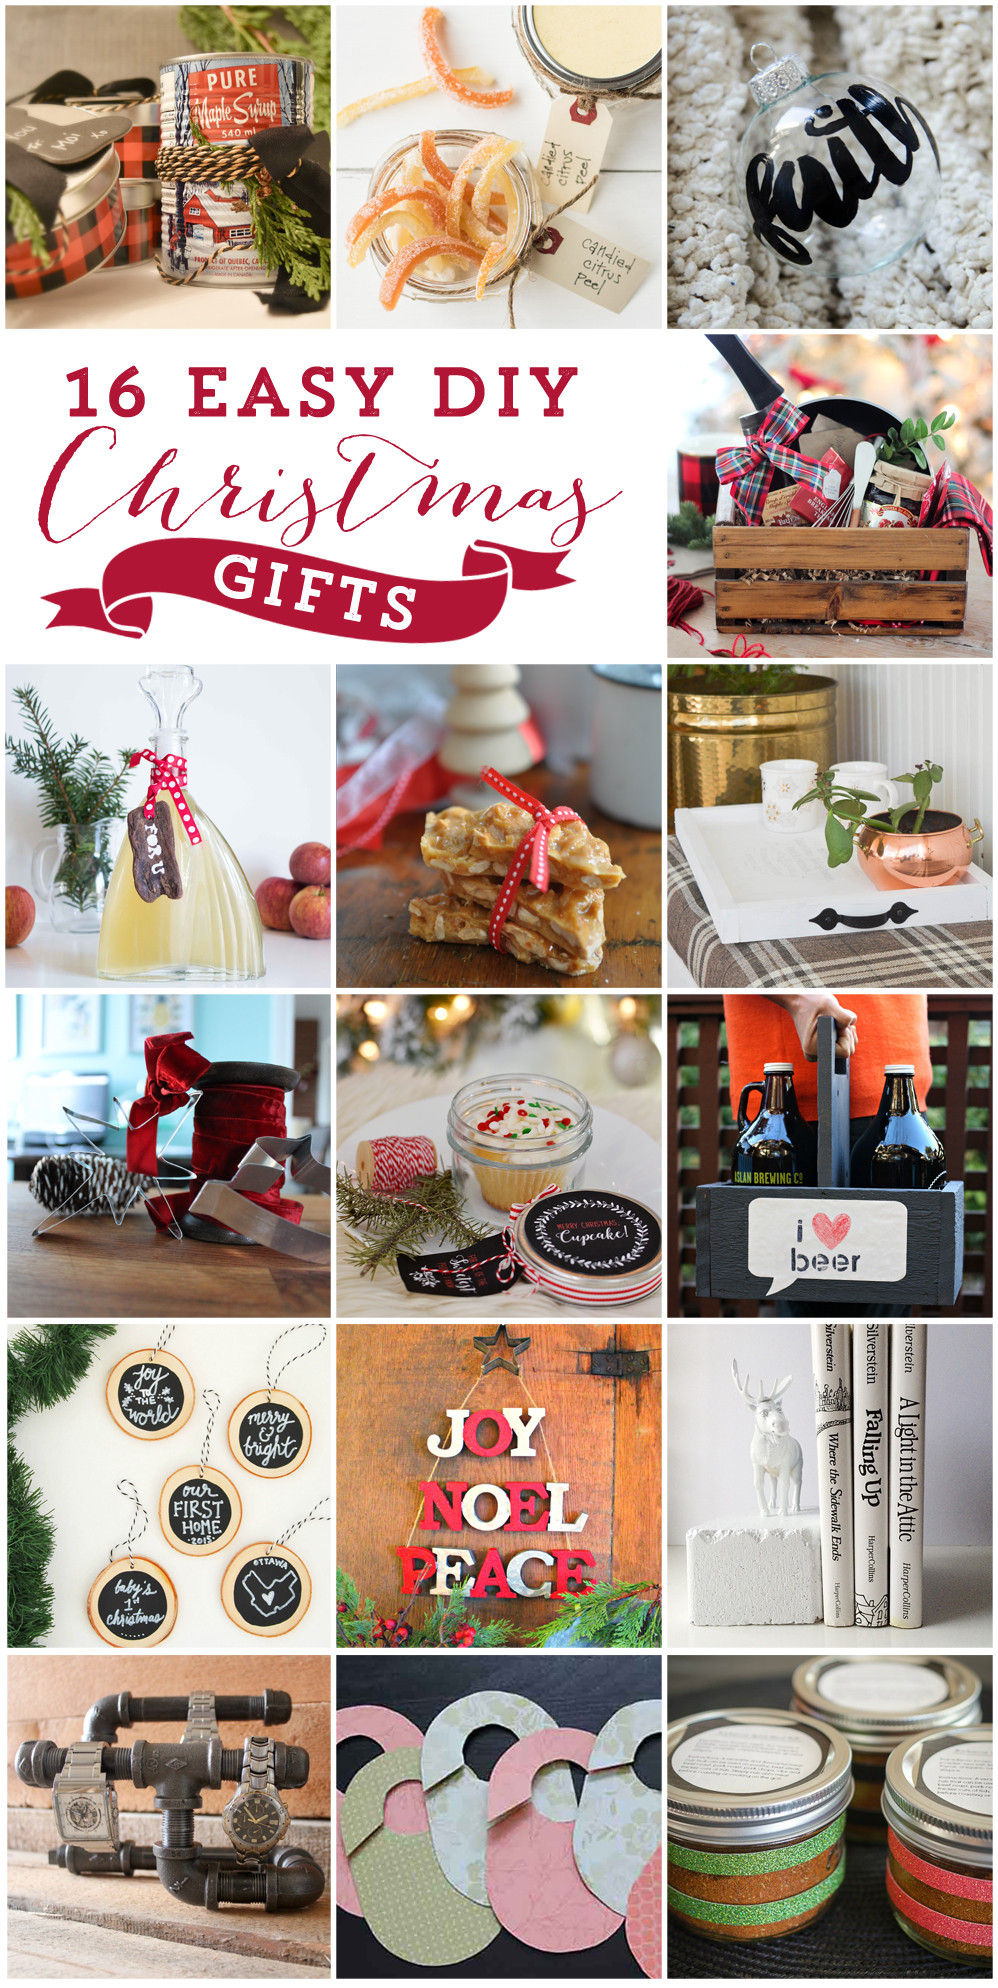 DIY Holiday Gift Ideas  Christmas Cupcake in a Jar 16 More DIY Gift Ideas Free